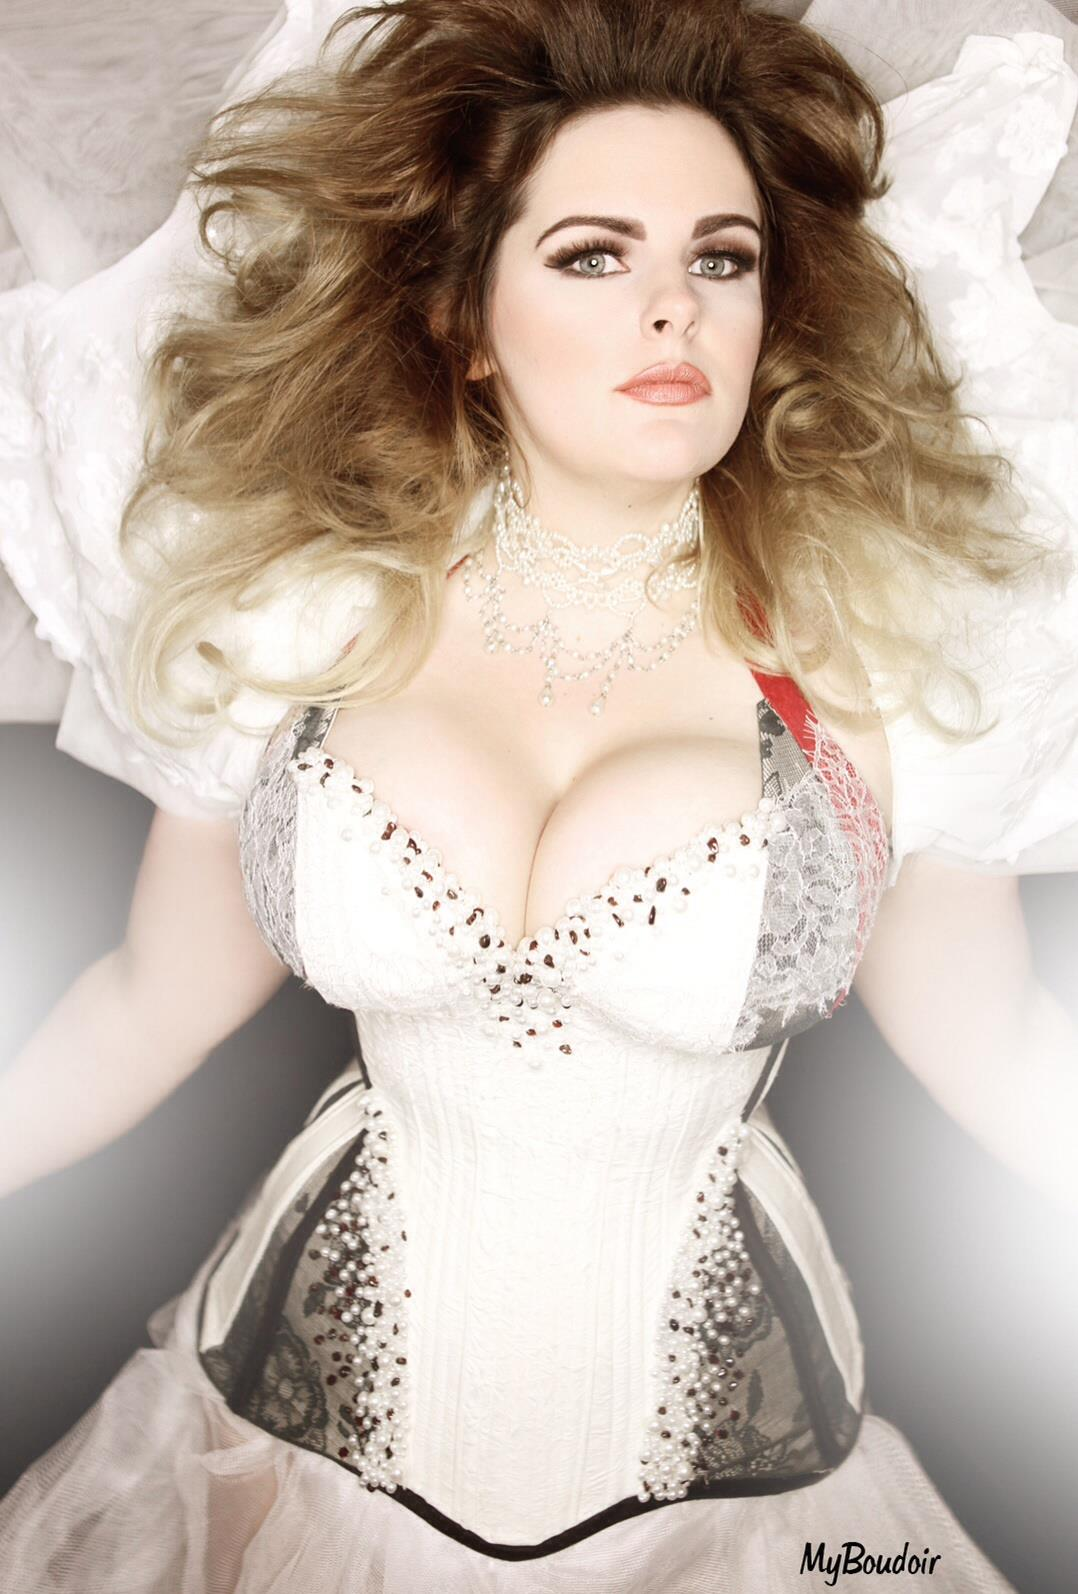 fc37d37d8d3 A plunge gored cup corset by Crikey Aphrodite worn by Evie Wolfe and  photographed by My